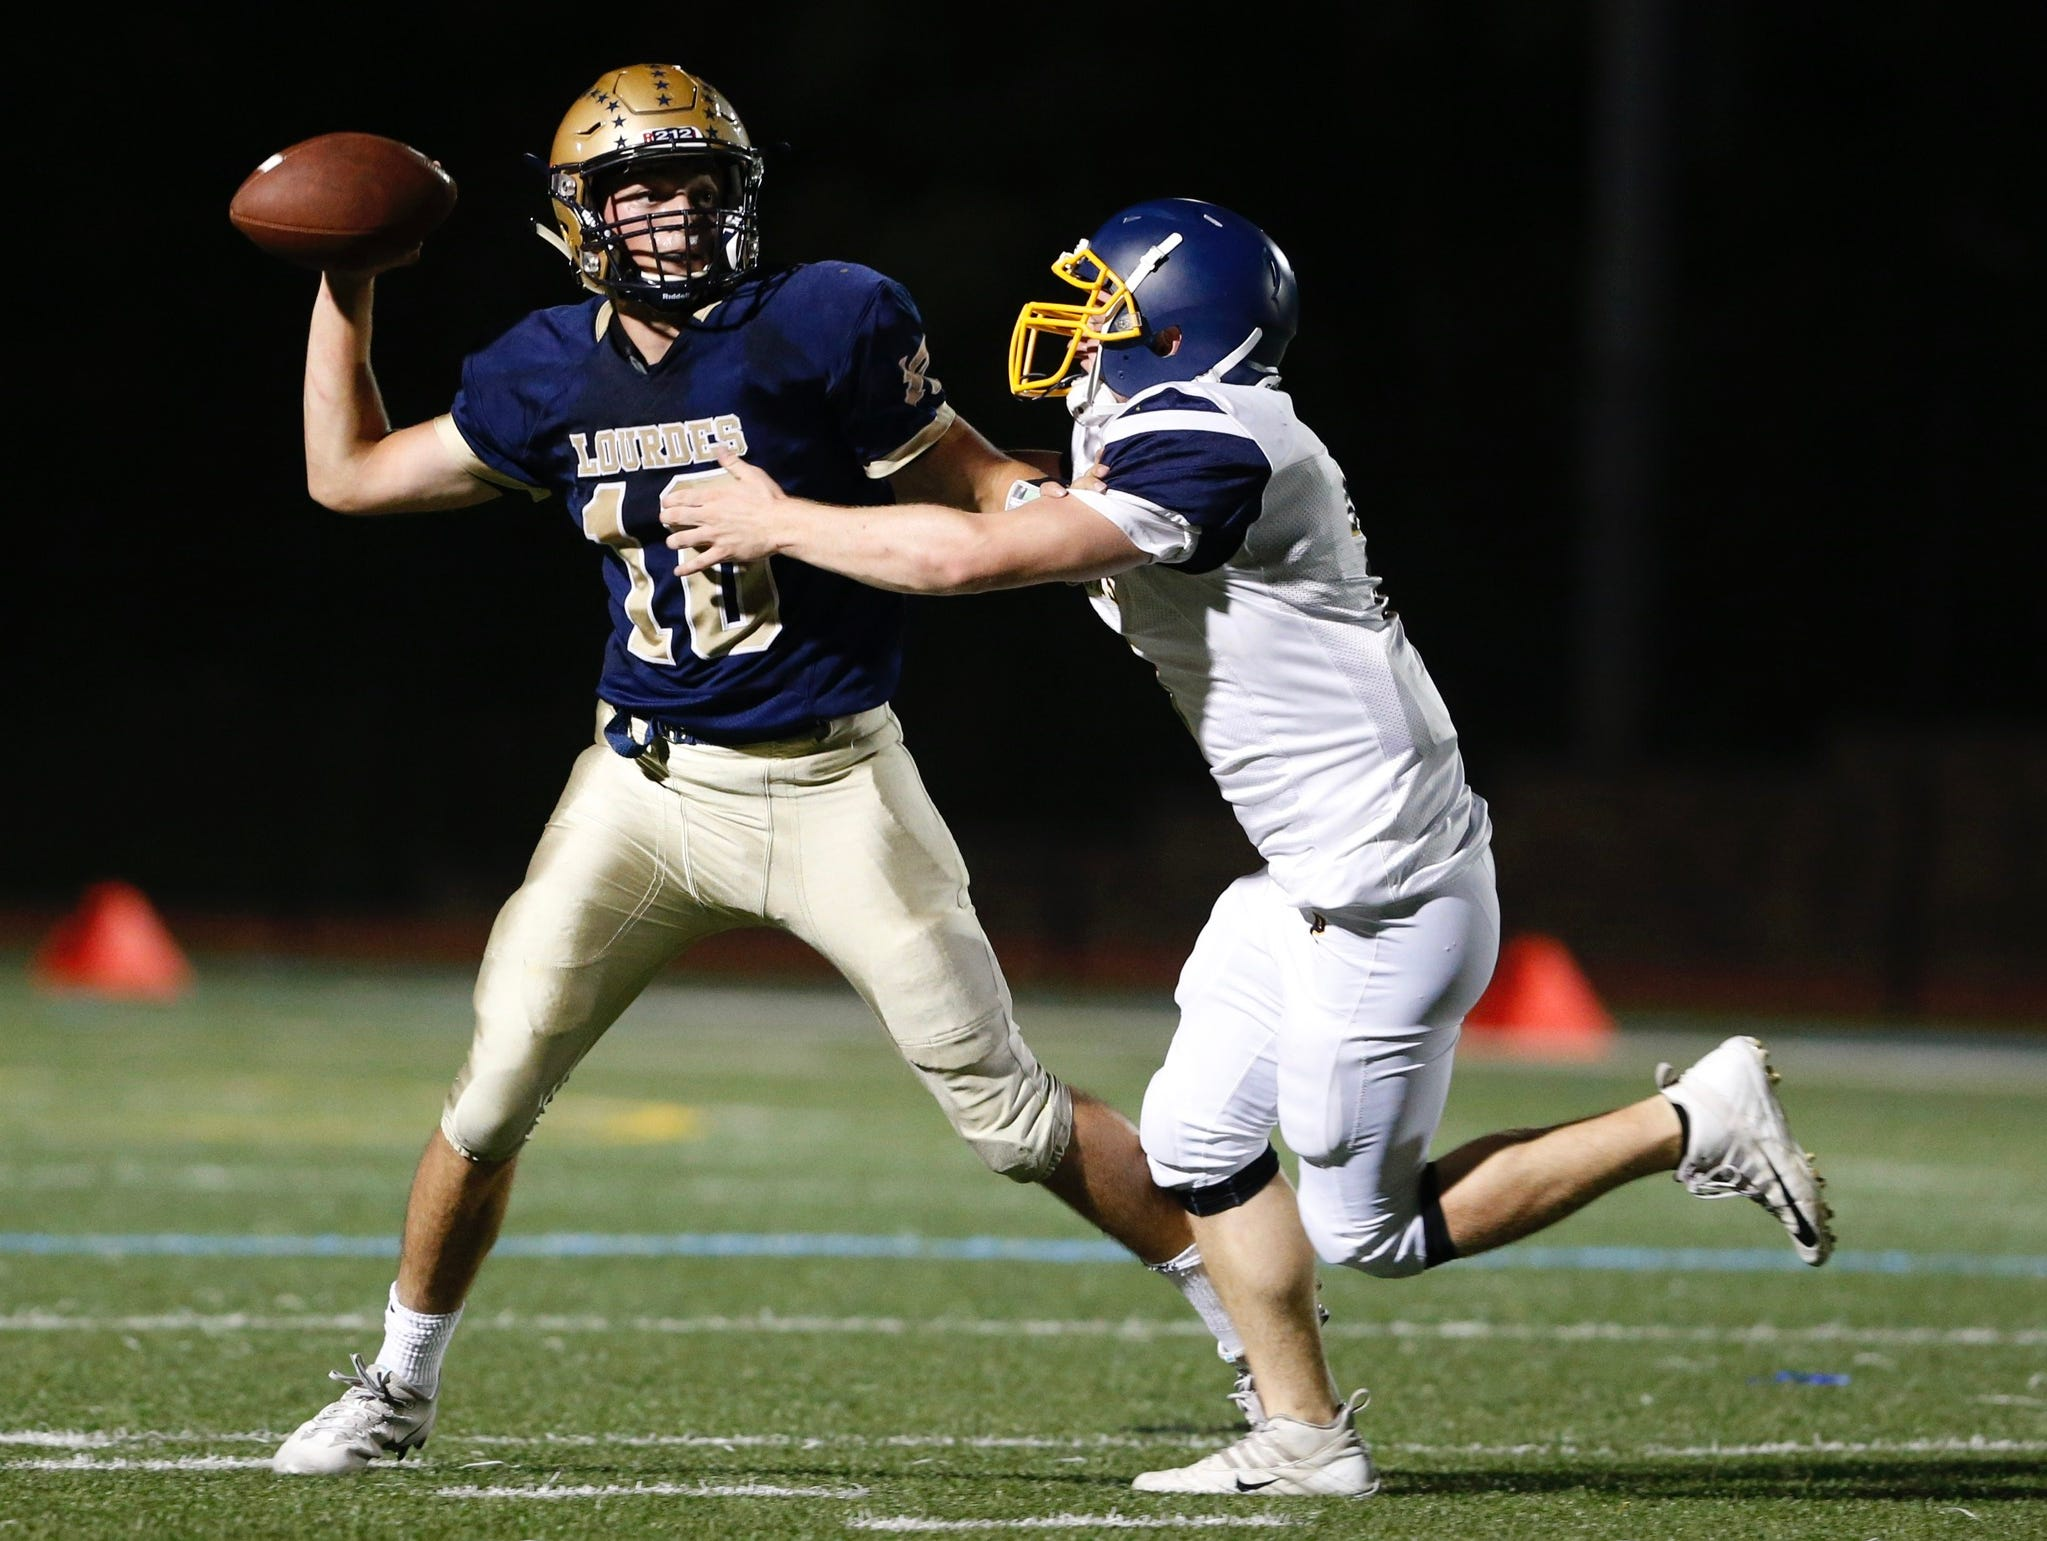 Panas' Jack O'Brien closes in on Lourdes' Max Kras as he passes the ball to Kyle Strack to score in the second quarter of Friday's game on Sept. 21, 2018.